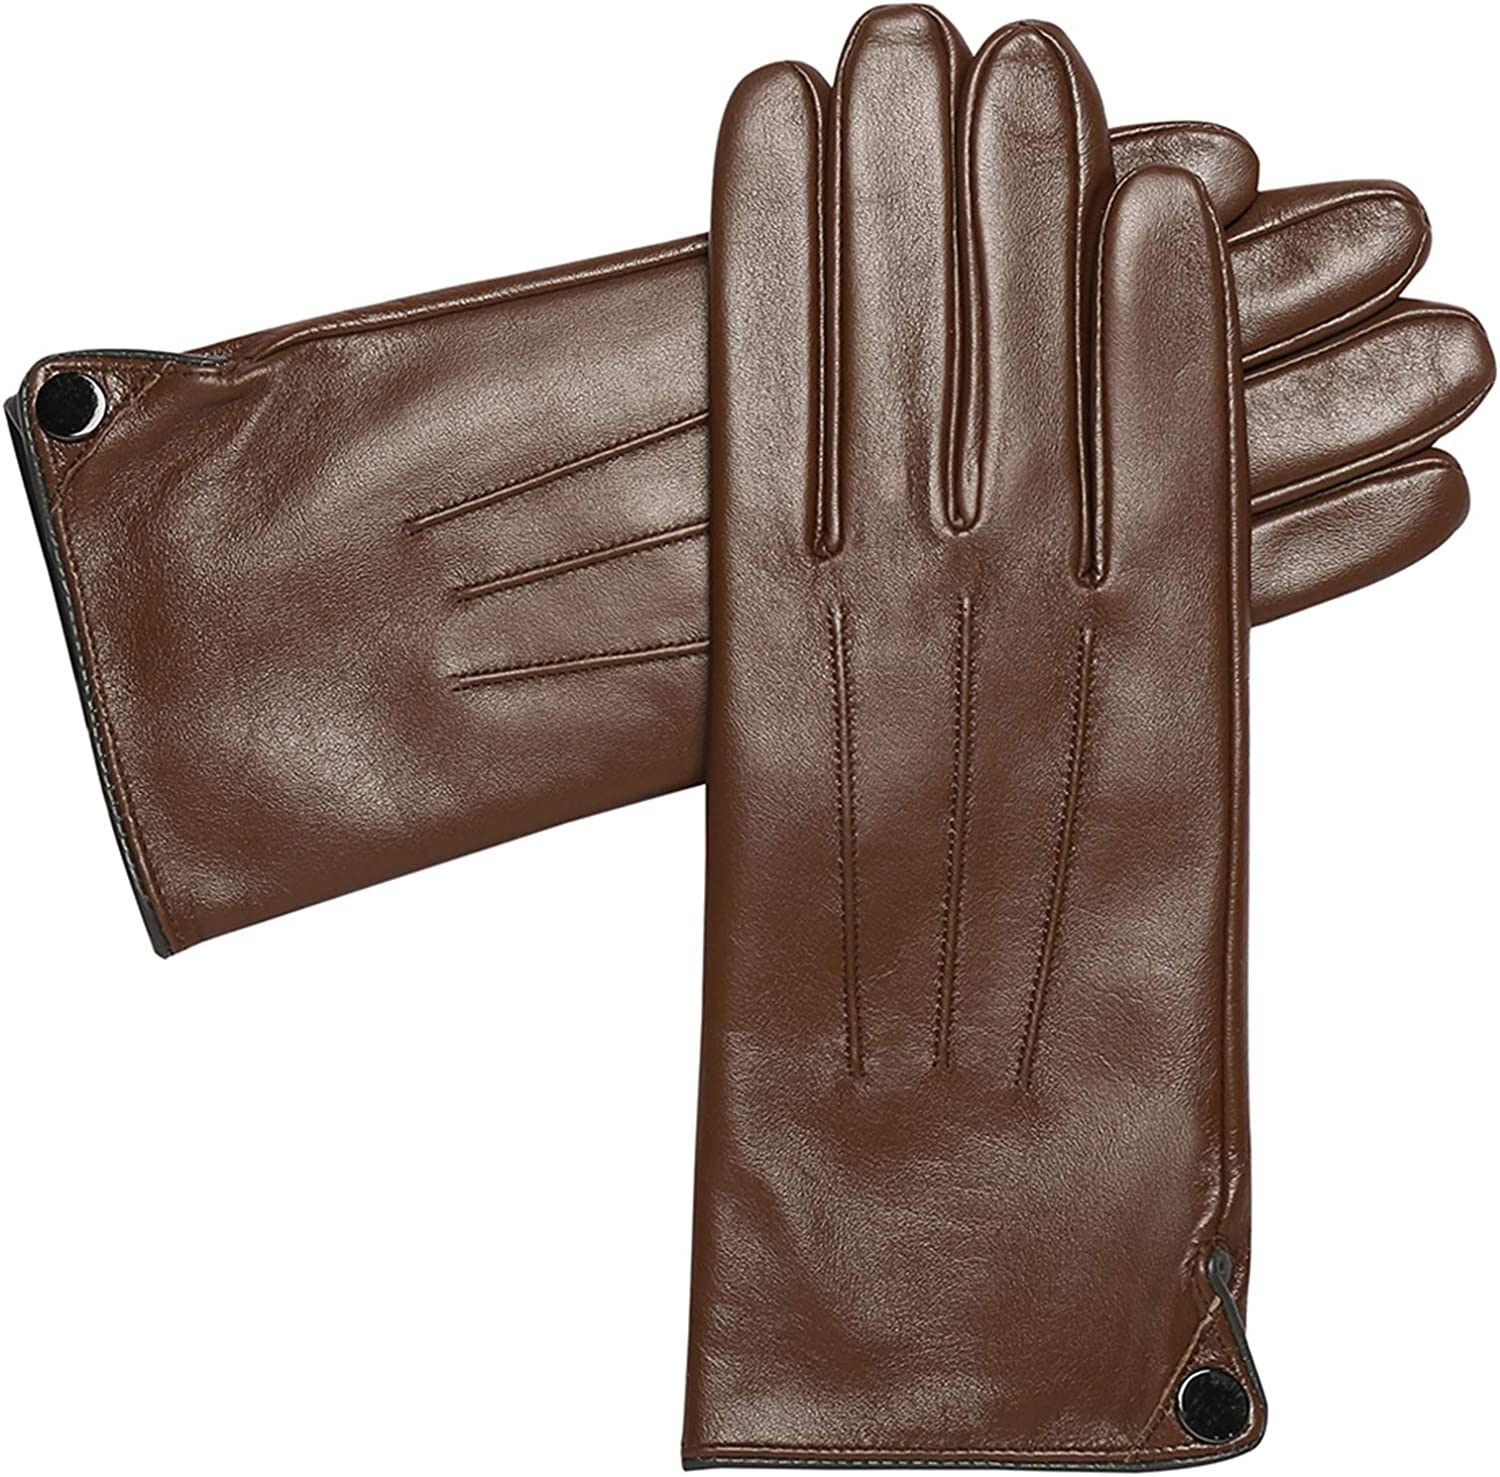 Womens Winter Luxury Sheepskin Leather Gloves - Acdyion Touchscreen Windproof Dress Driving Gloves With Cashmere Lining